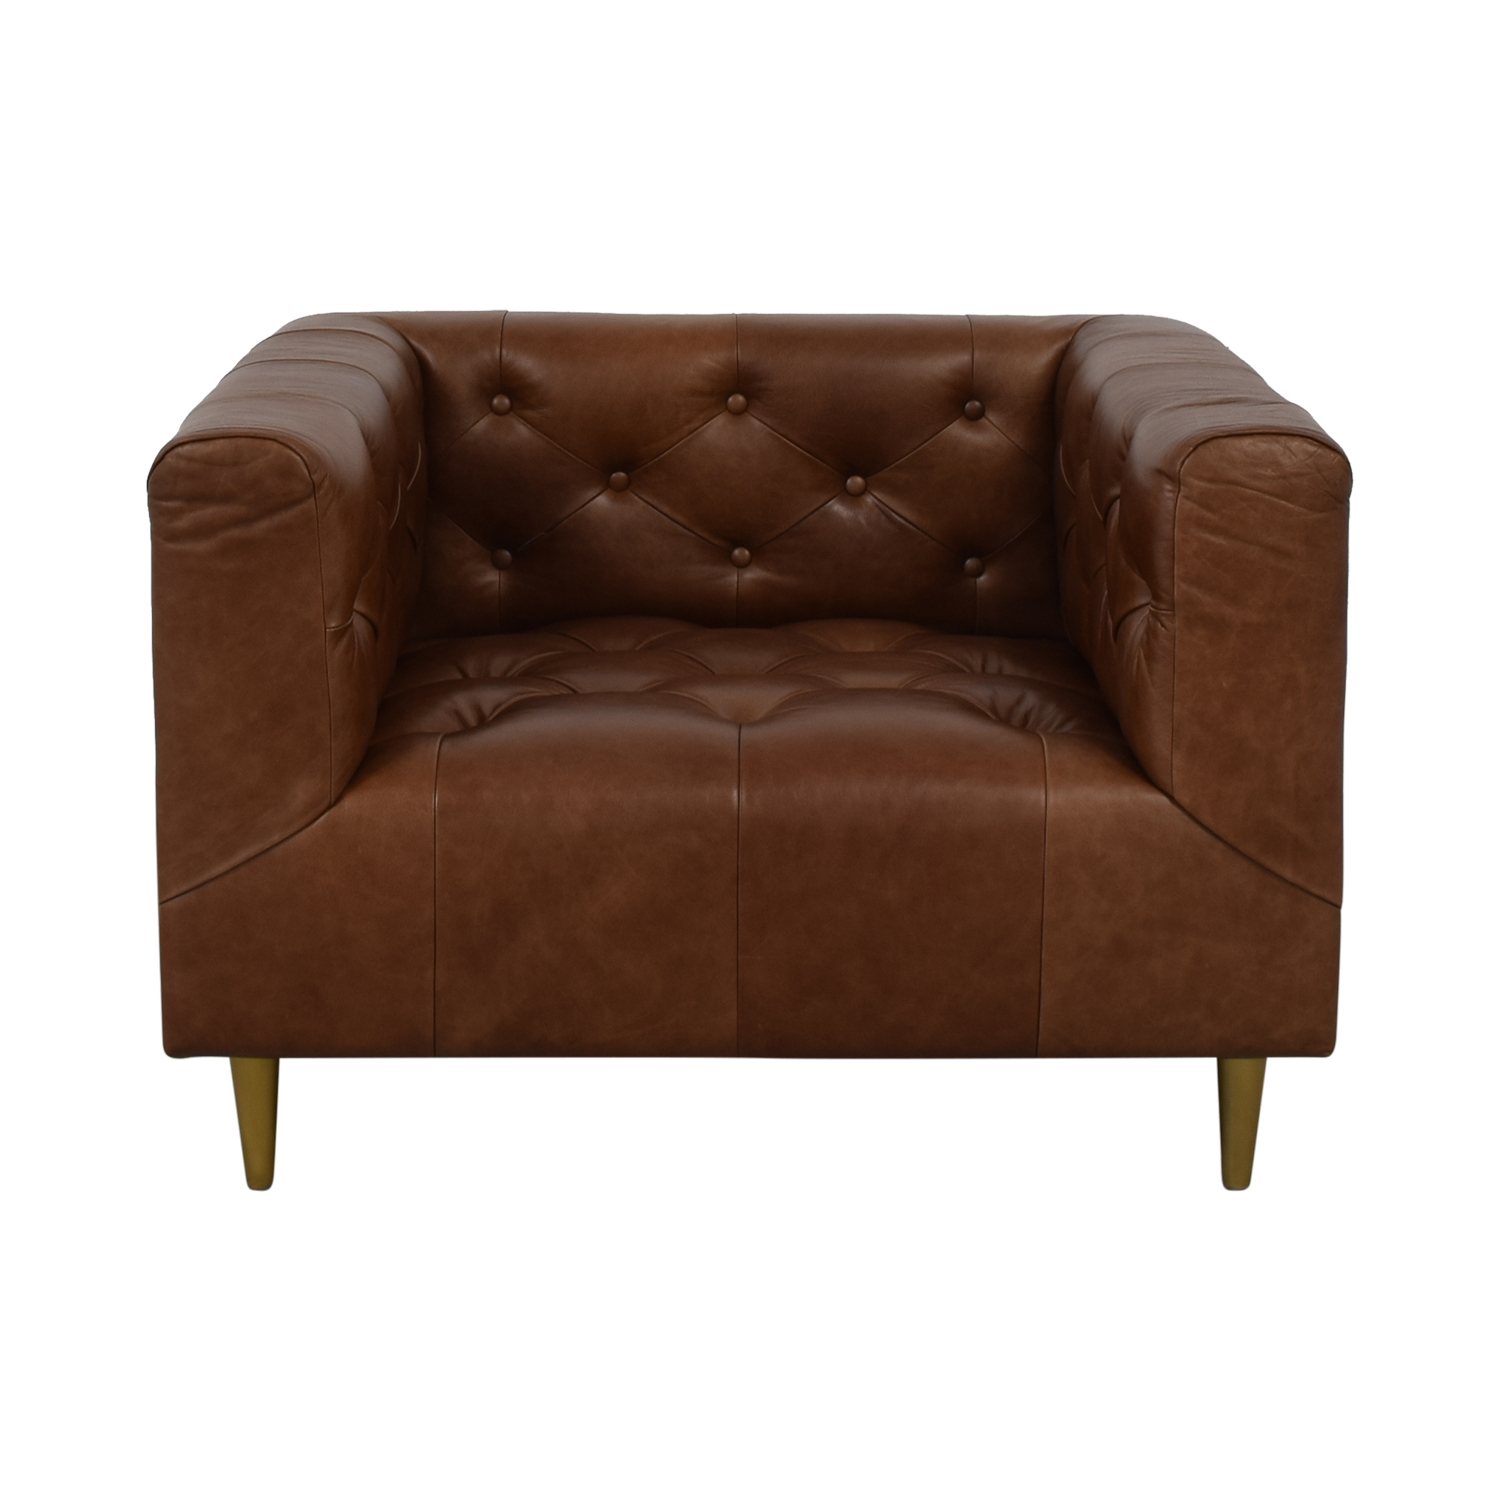 Interior Define Ms. Chesterfield Cognac Tufted Accent Chair discount